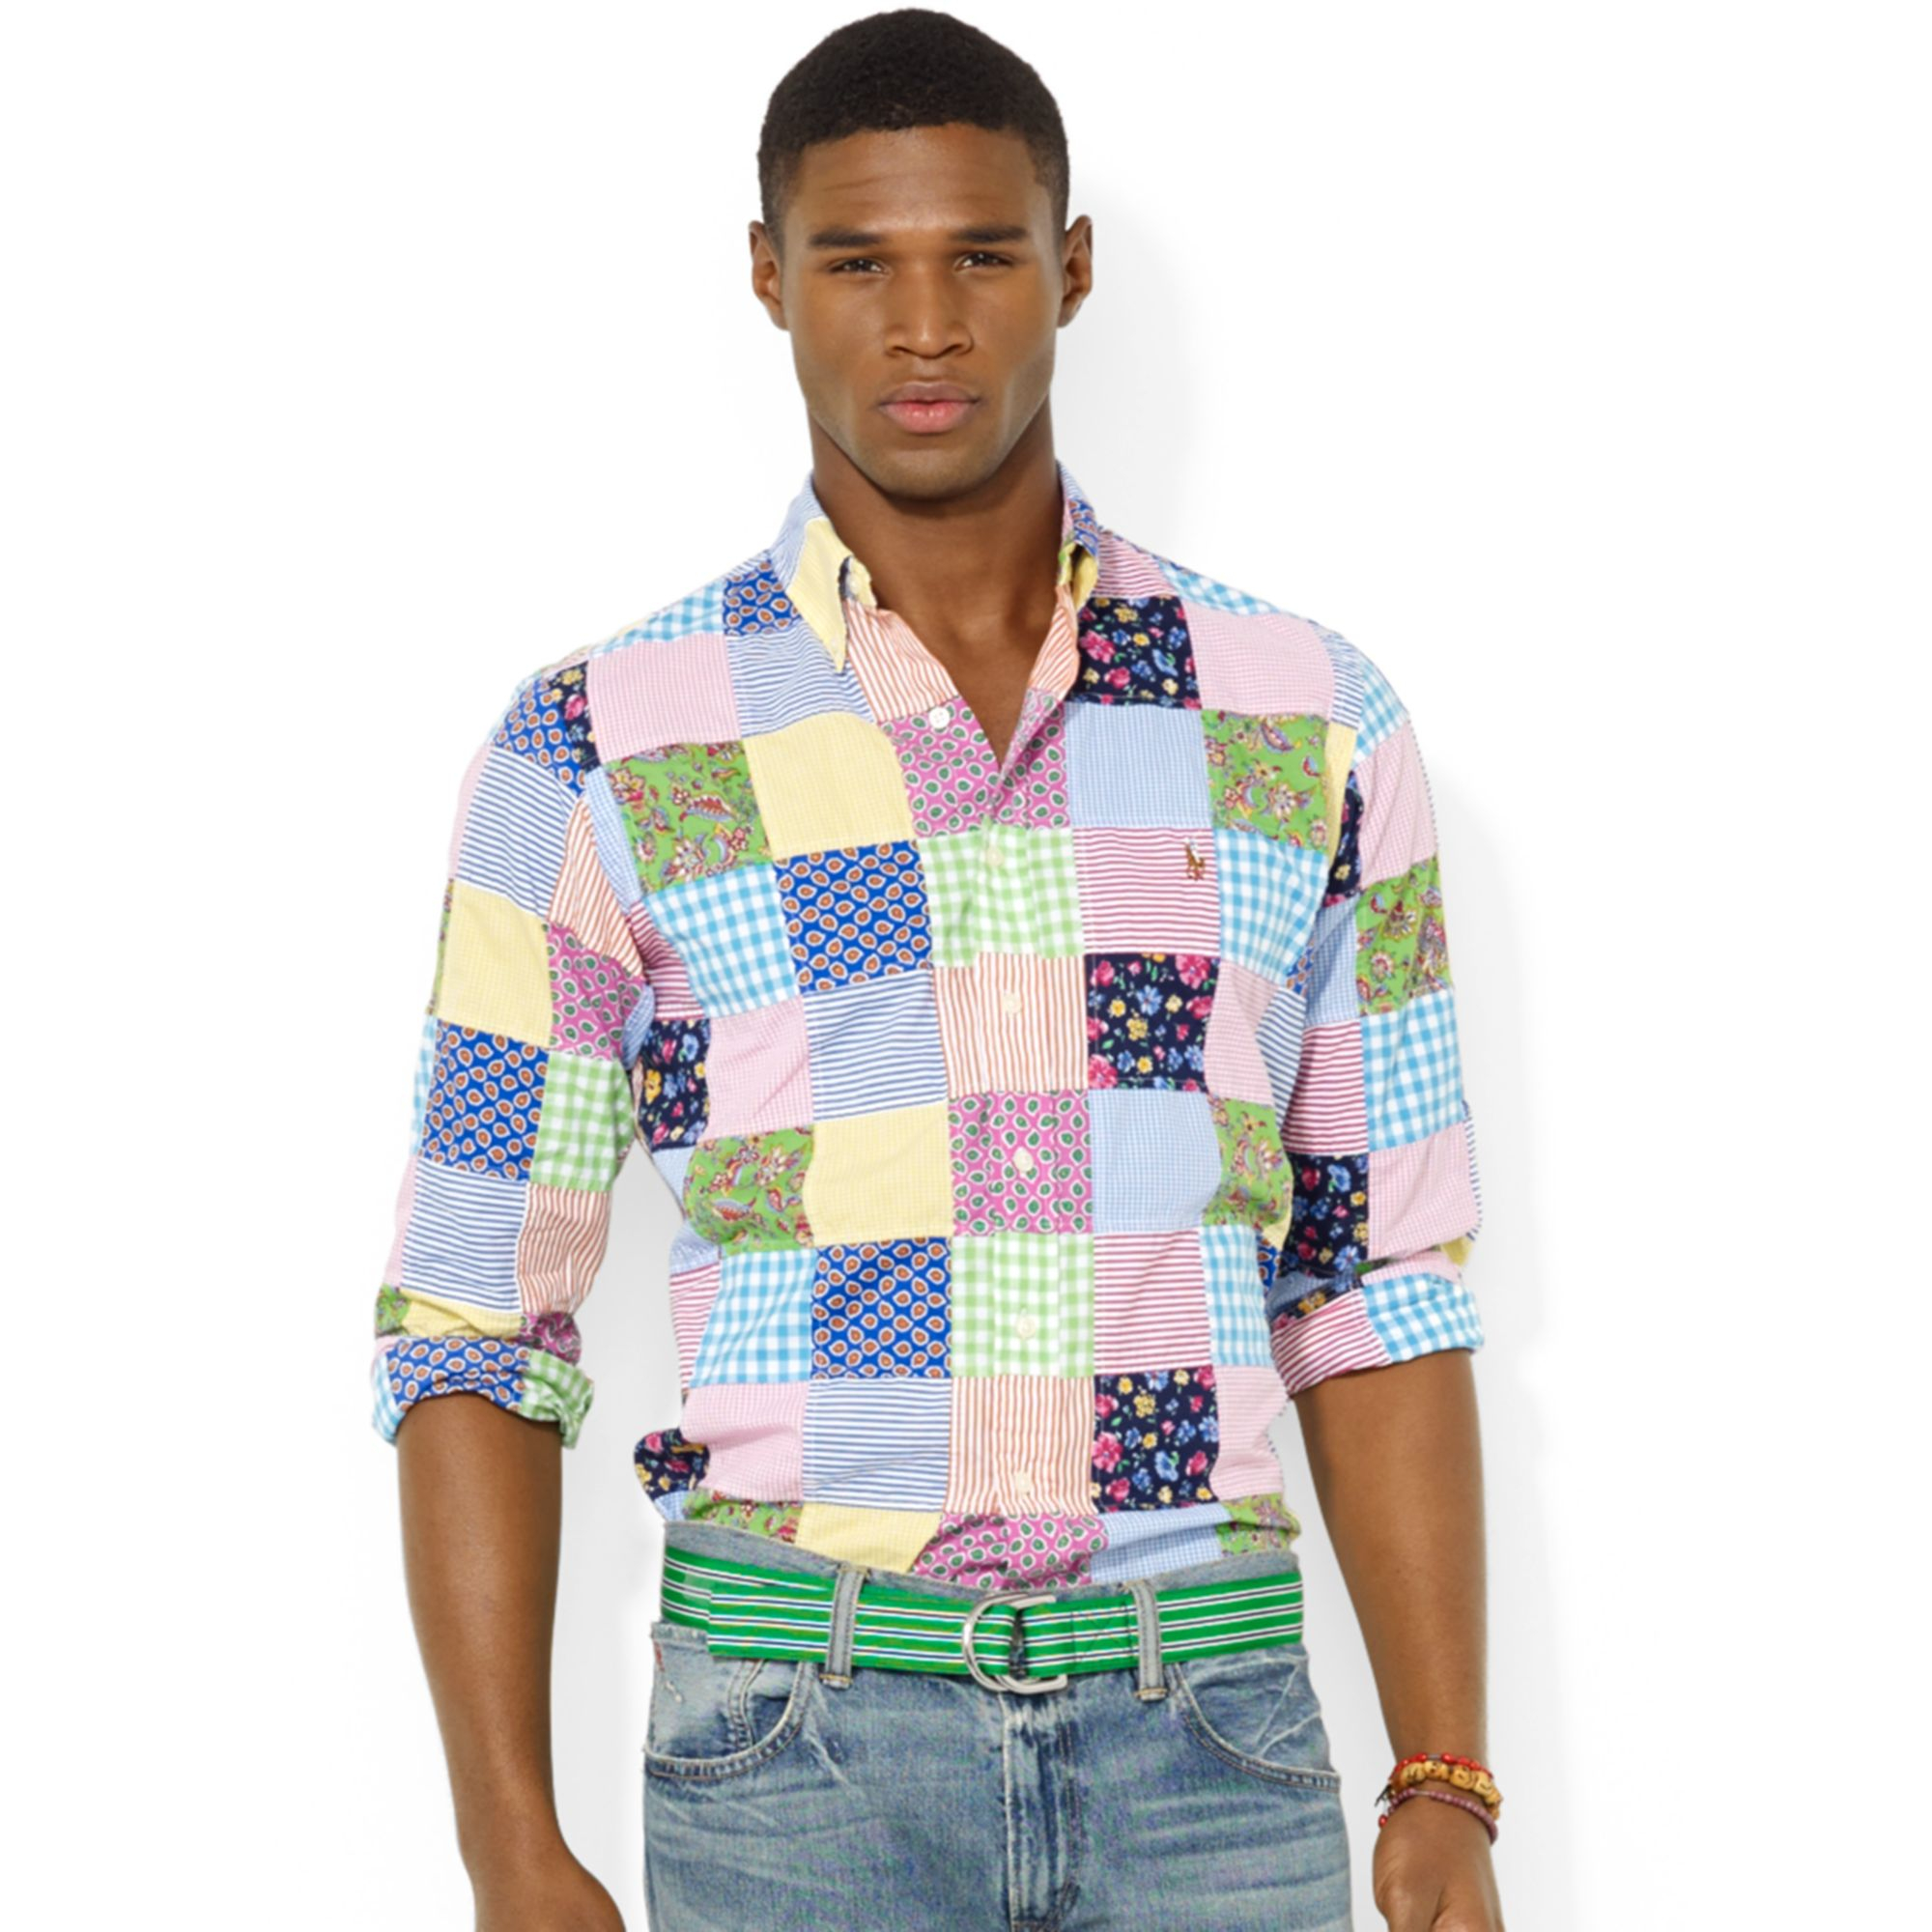 Men's sport shirts at Brooks Brothers help you achieve that unmistakably relaxed look while maintaining a classic sense of style. Available in a wide variety of solid colors, stripes, plaids and other patterns, our selection of casual button-down shirts lets you find the right aesthetic to fit your taste.